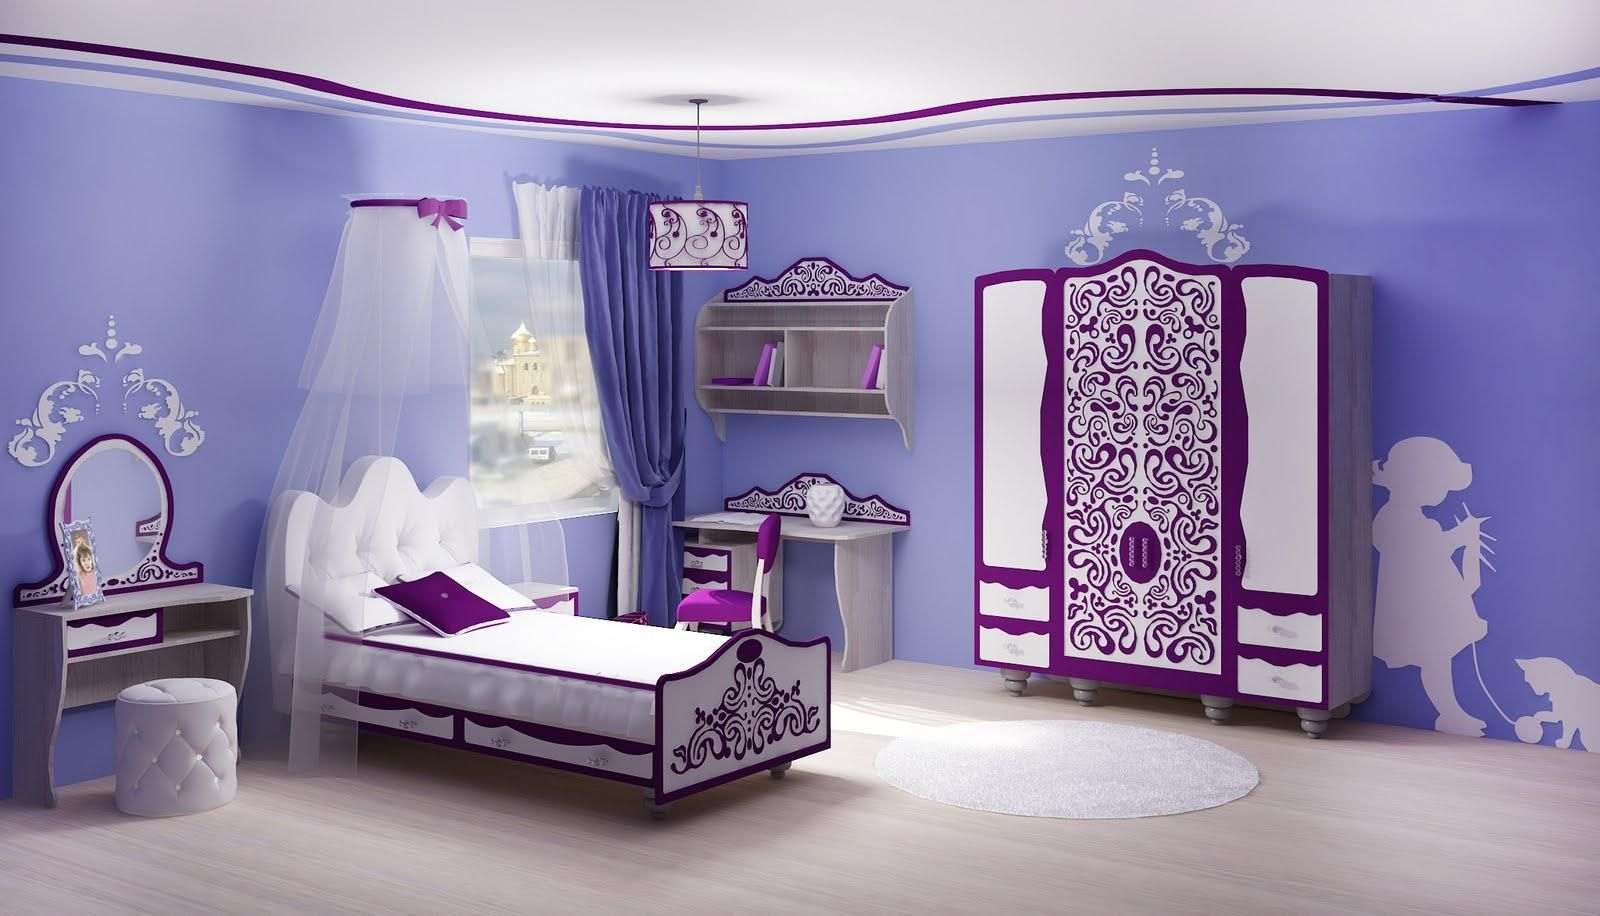 Purple room paint ideas - Fabulous Bedroom Paint Ideas With Light Blue Painting Wall Also White Purple Paint Furniture Set Plus